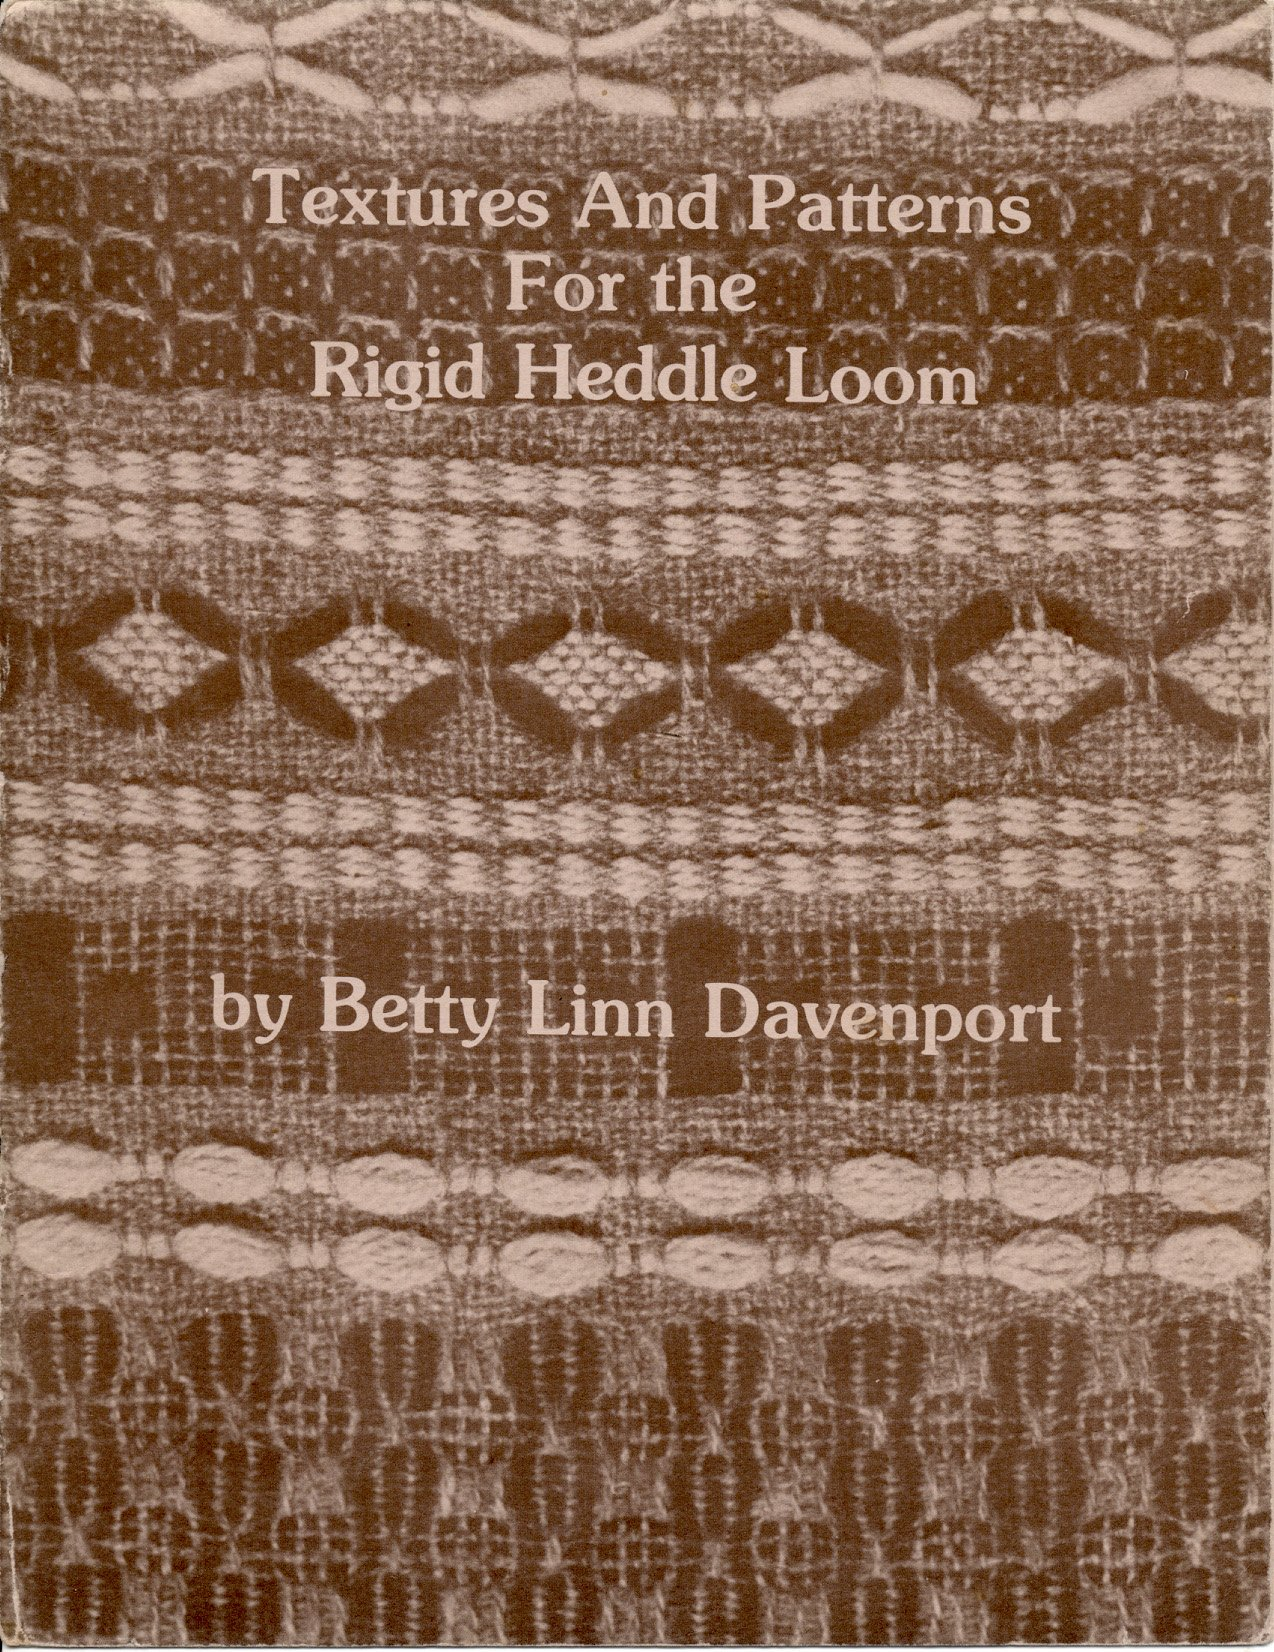 Textures and Patterns for the Rigid Heddle Loom (Paperback - 1980)